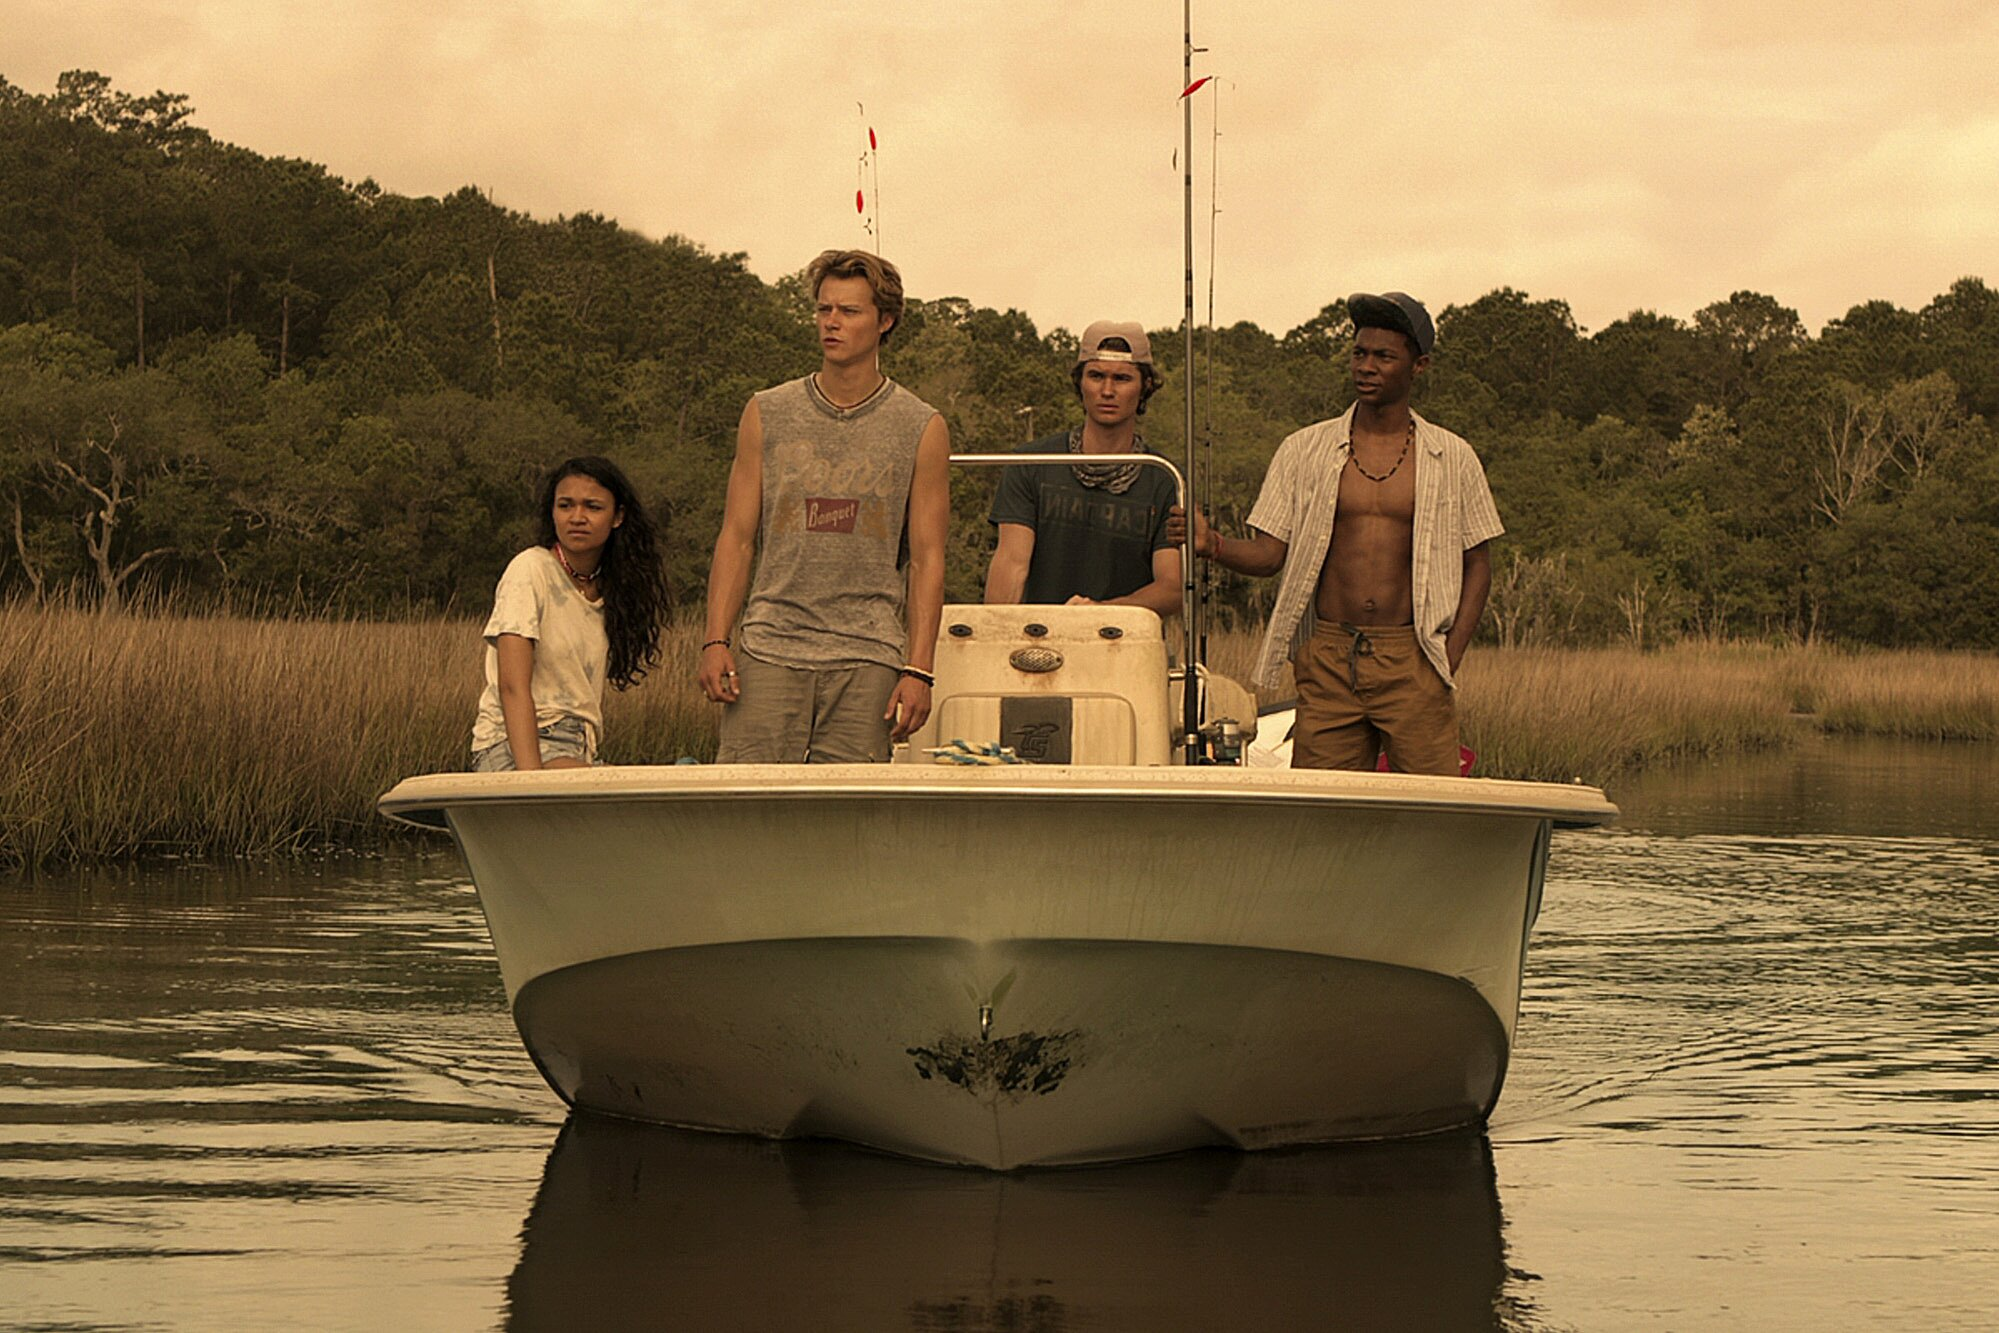 Madison Bailey, Rudy Pankow, Chase Stokes, and Jonathan Daviss star in the Netflix original series 'Outer Banks.' (Photo courtesy of Netflix.)